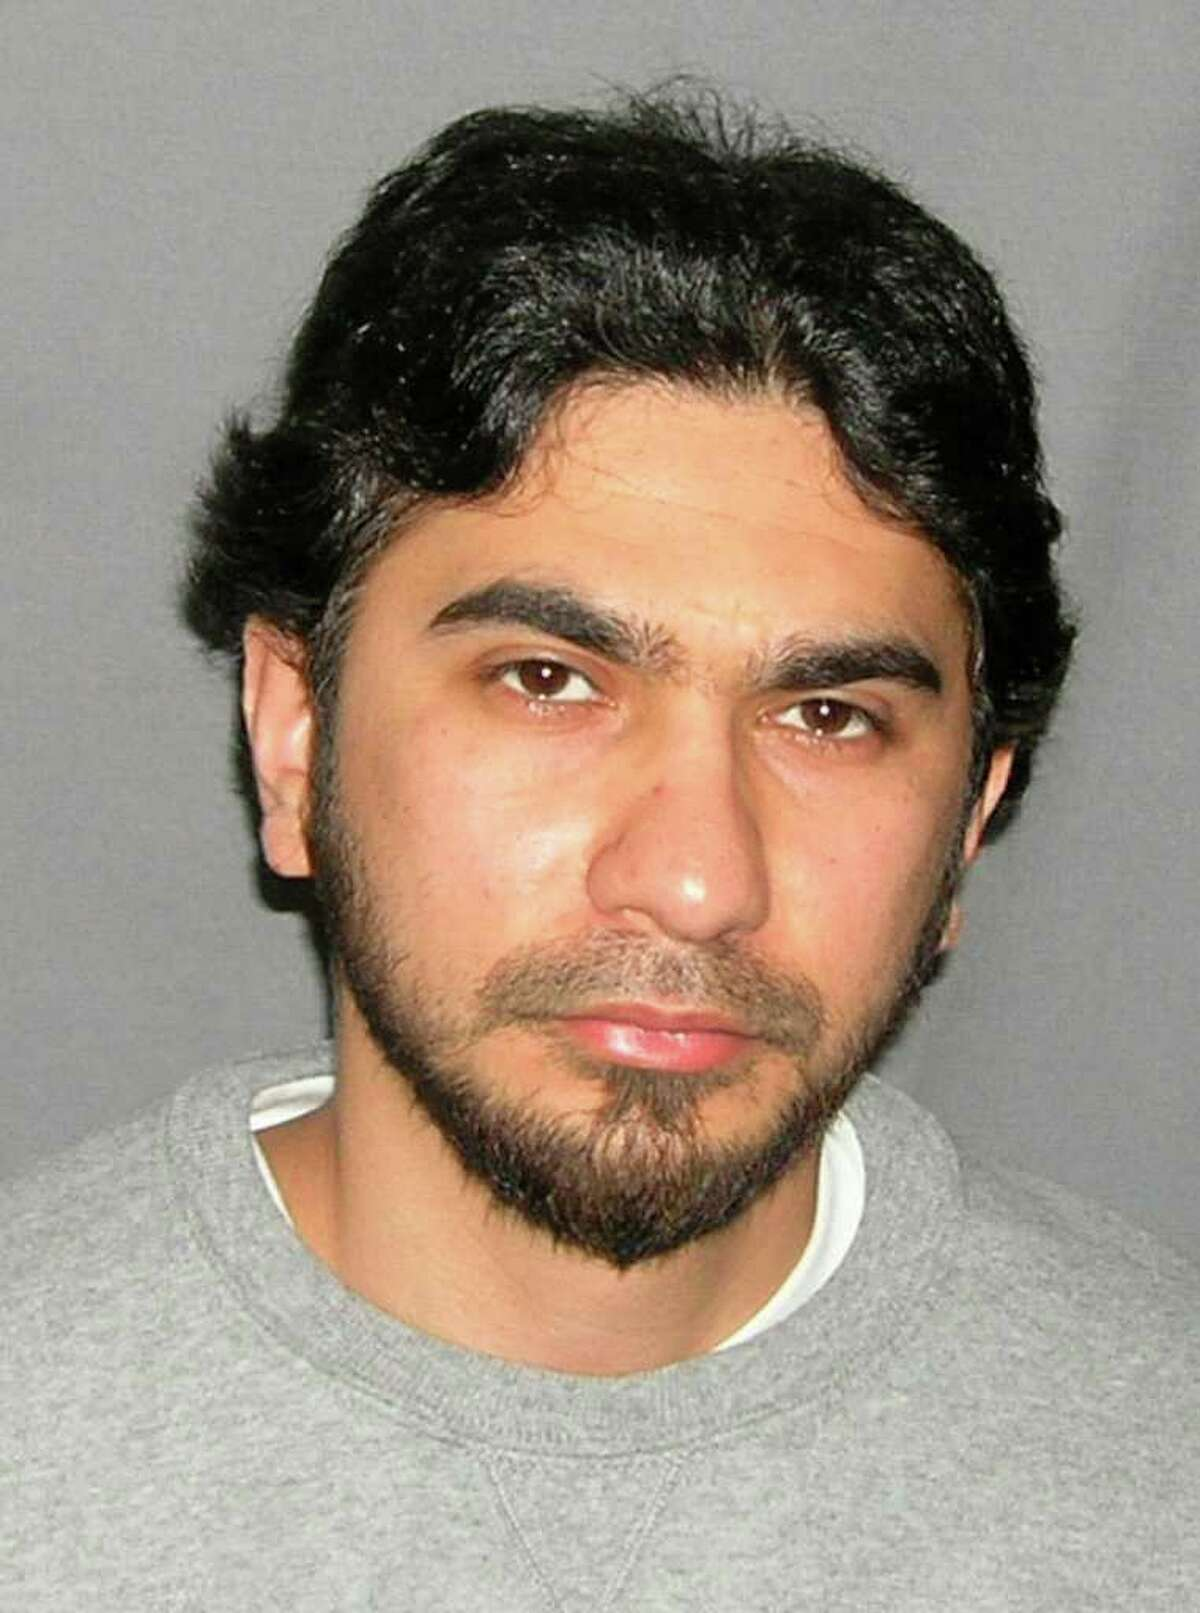 FILE - This undated file photo originally released by the U.S. Marshal's Service on May 19, 2010, shows Faisal Shahzad. The U.S. Justice Department announced on Thursday, June 17, 2010, that Shahzad, 30, has been indicted by a federal grand jury in New York on charges related to the failed May 1, 2010 car bombing in New York City's Times Square. (AP Photo/U.S. Marshals Service, File)